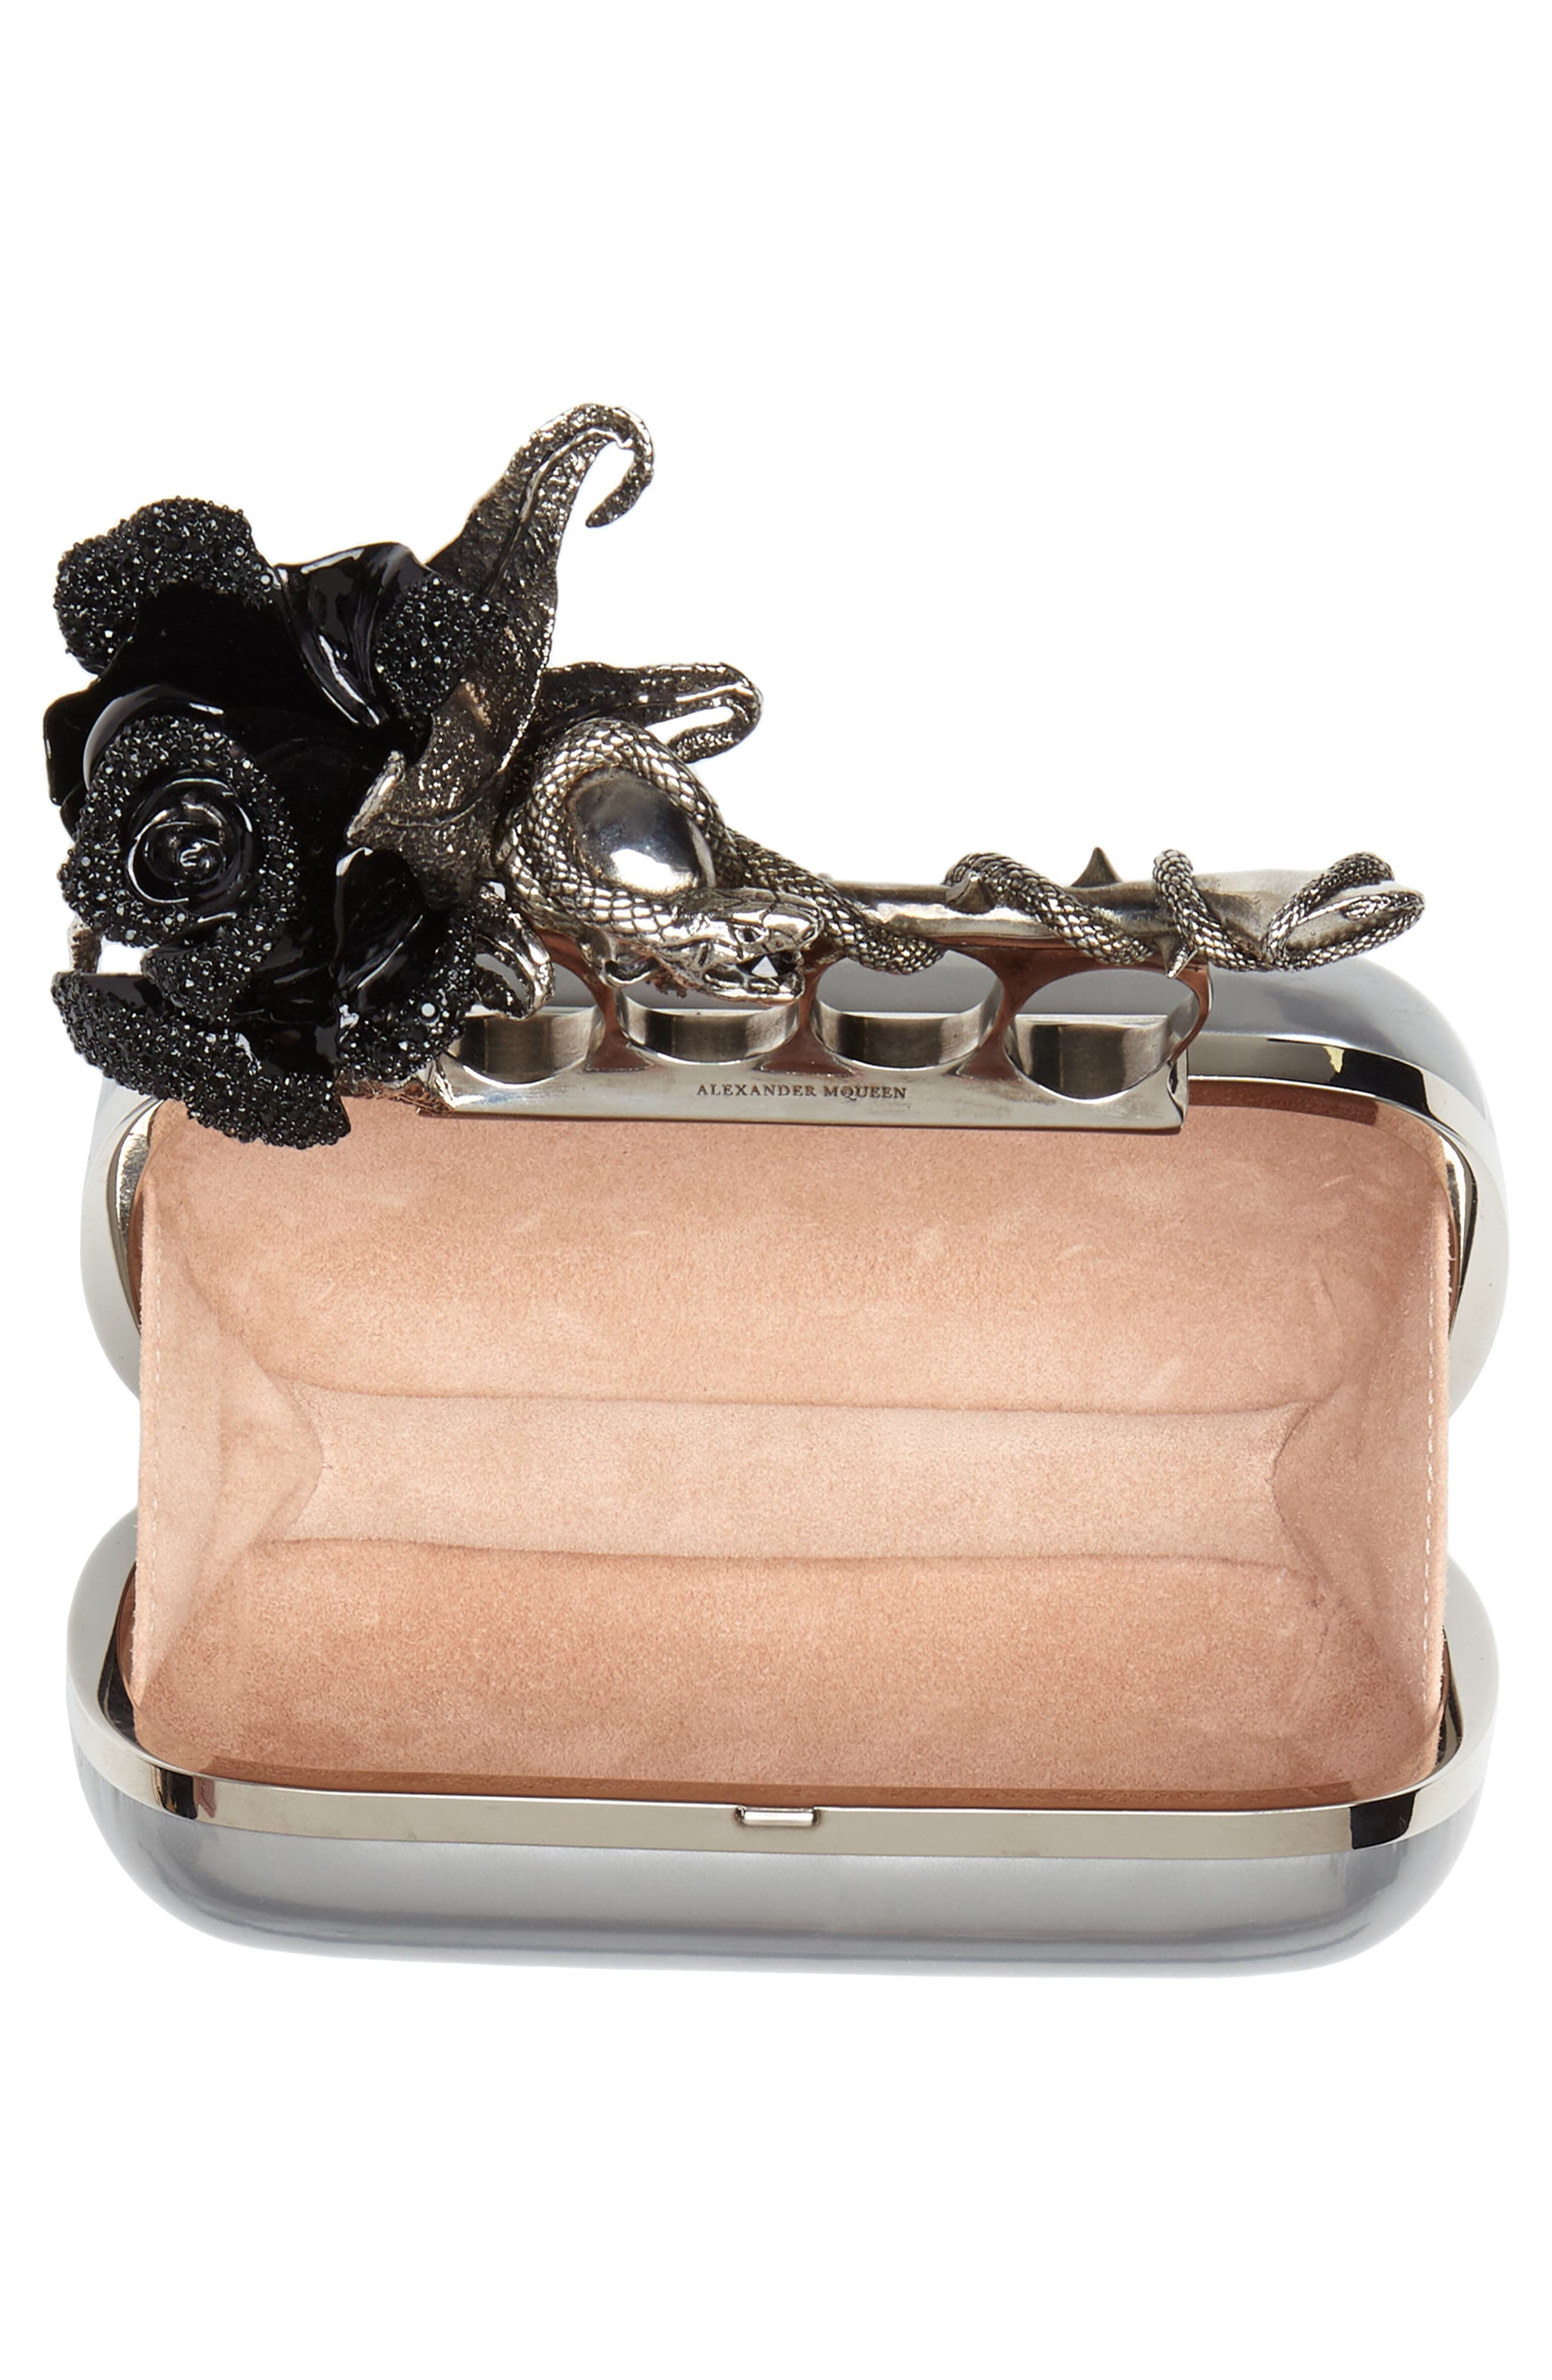 Knuckle Clasp Metallic Leather Box Clutch,                             Alternate thumbnail 4, color,                             Silver